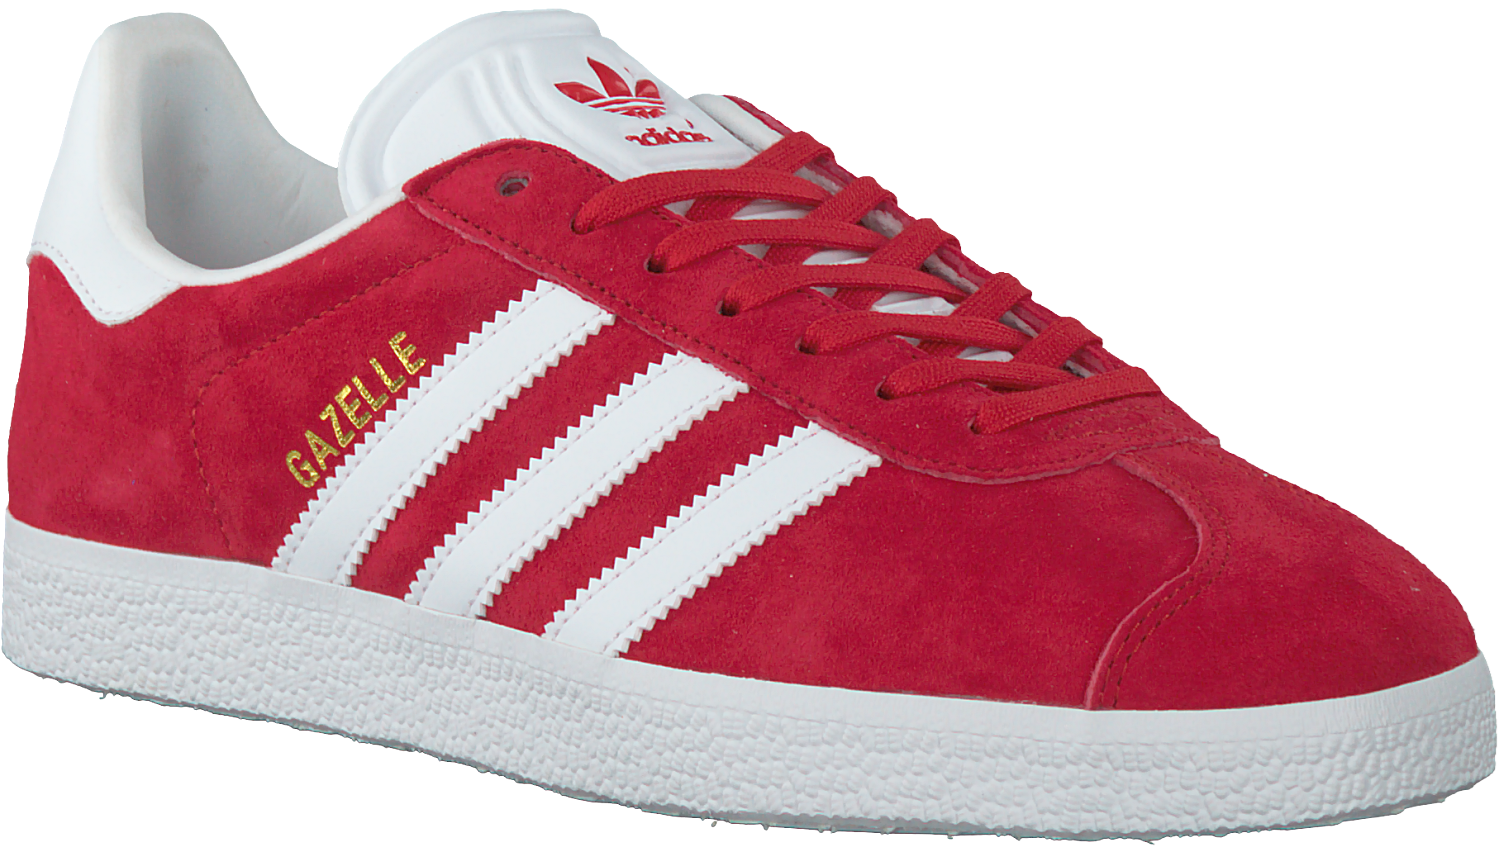 Rode ADIDAS Sneakers GAZELLE DAMES - Omoda.be